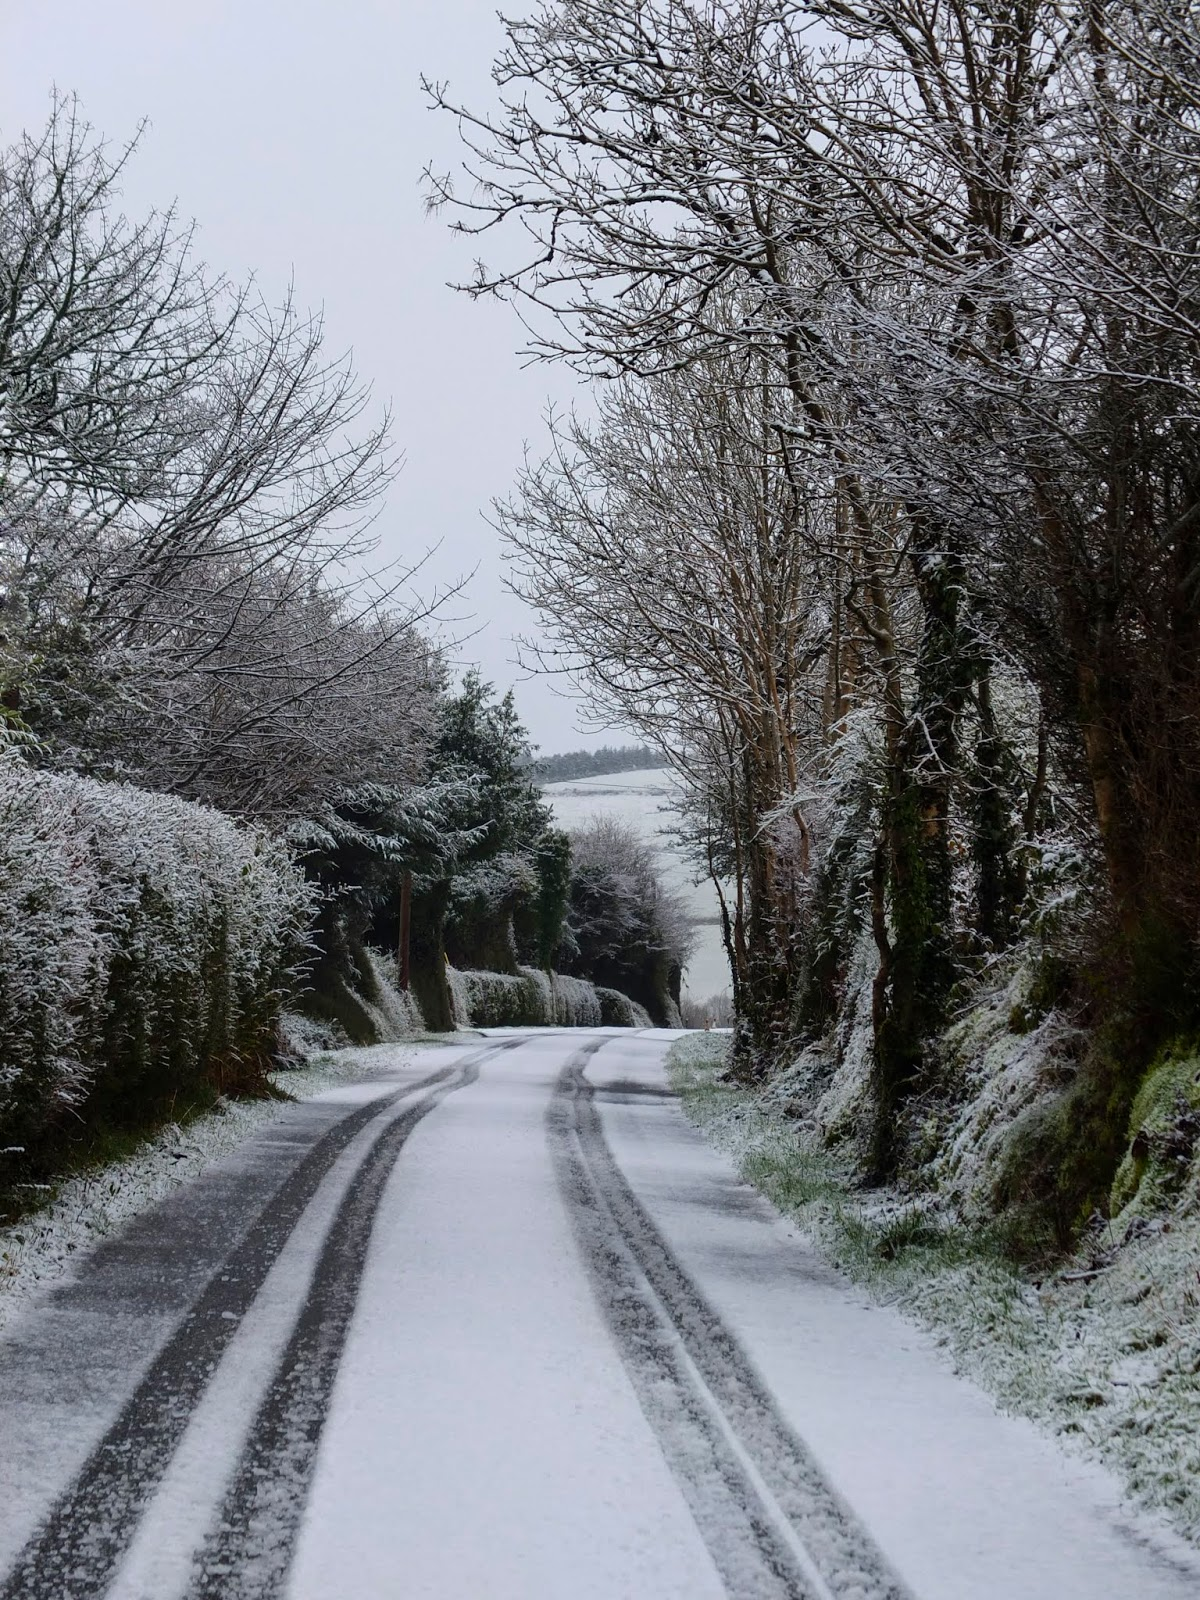 Tyre tracks in the snow on a countryside road in North County Cork.